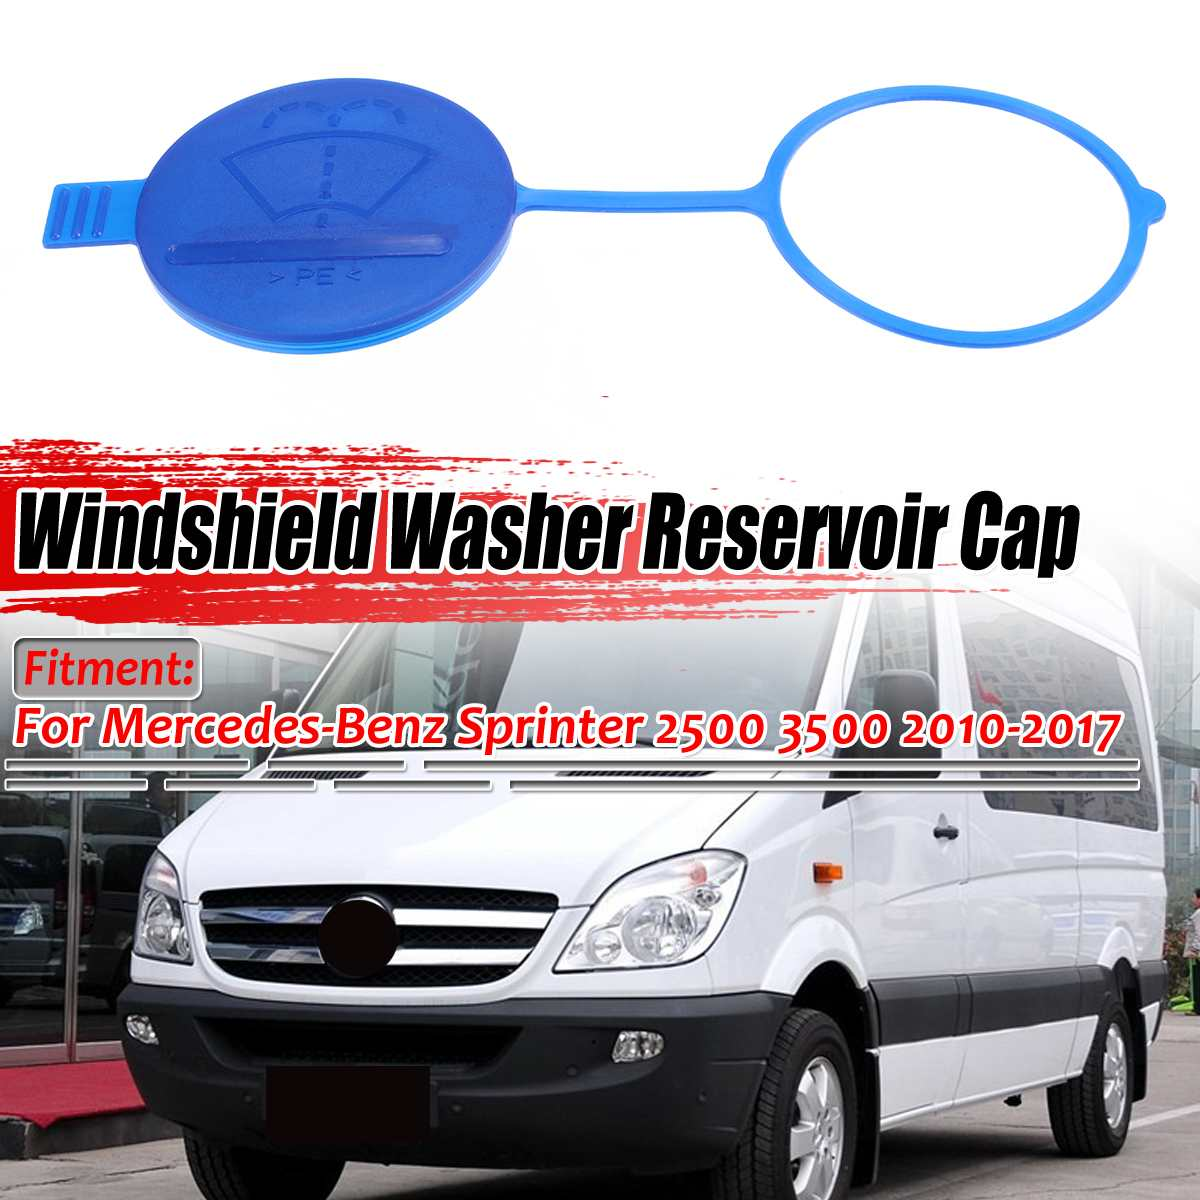 New Car Windshield Washer Fluid Reservoir Cap For Mercedes For Benz Sprinter 2500 3500 2010-2017 6388690008 A9068690072